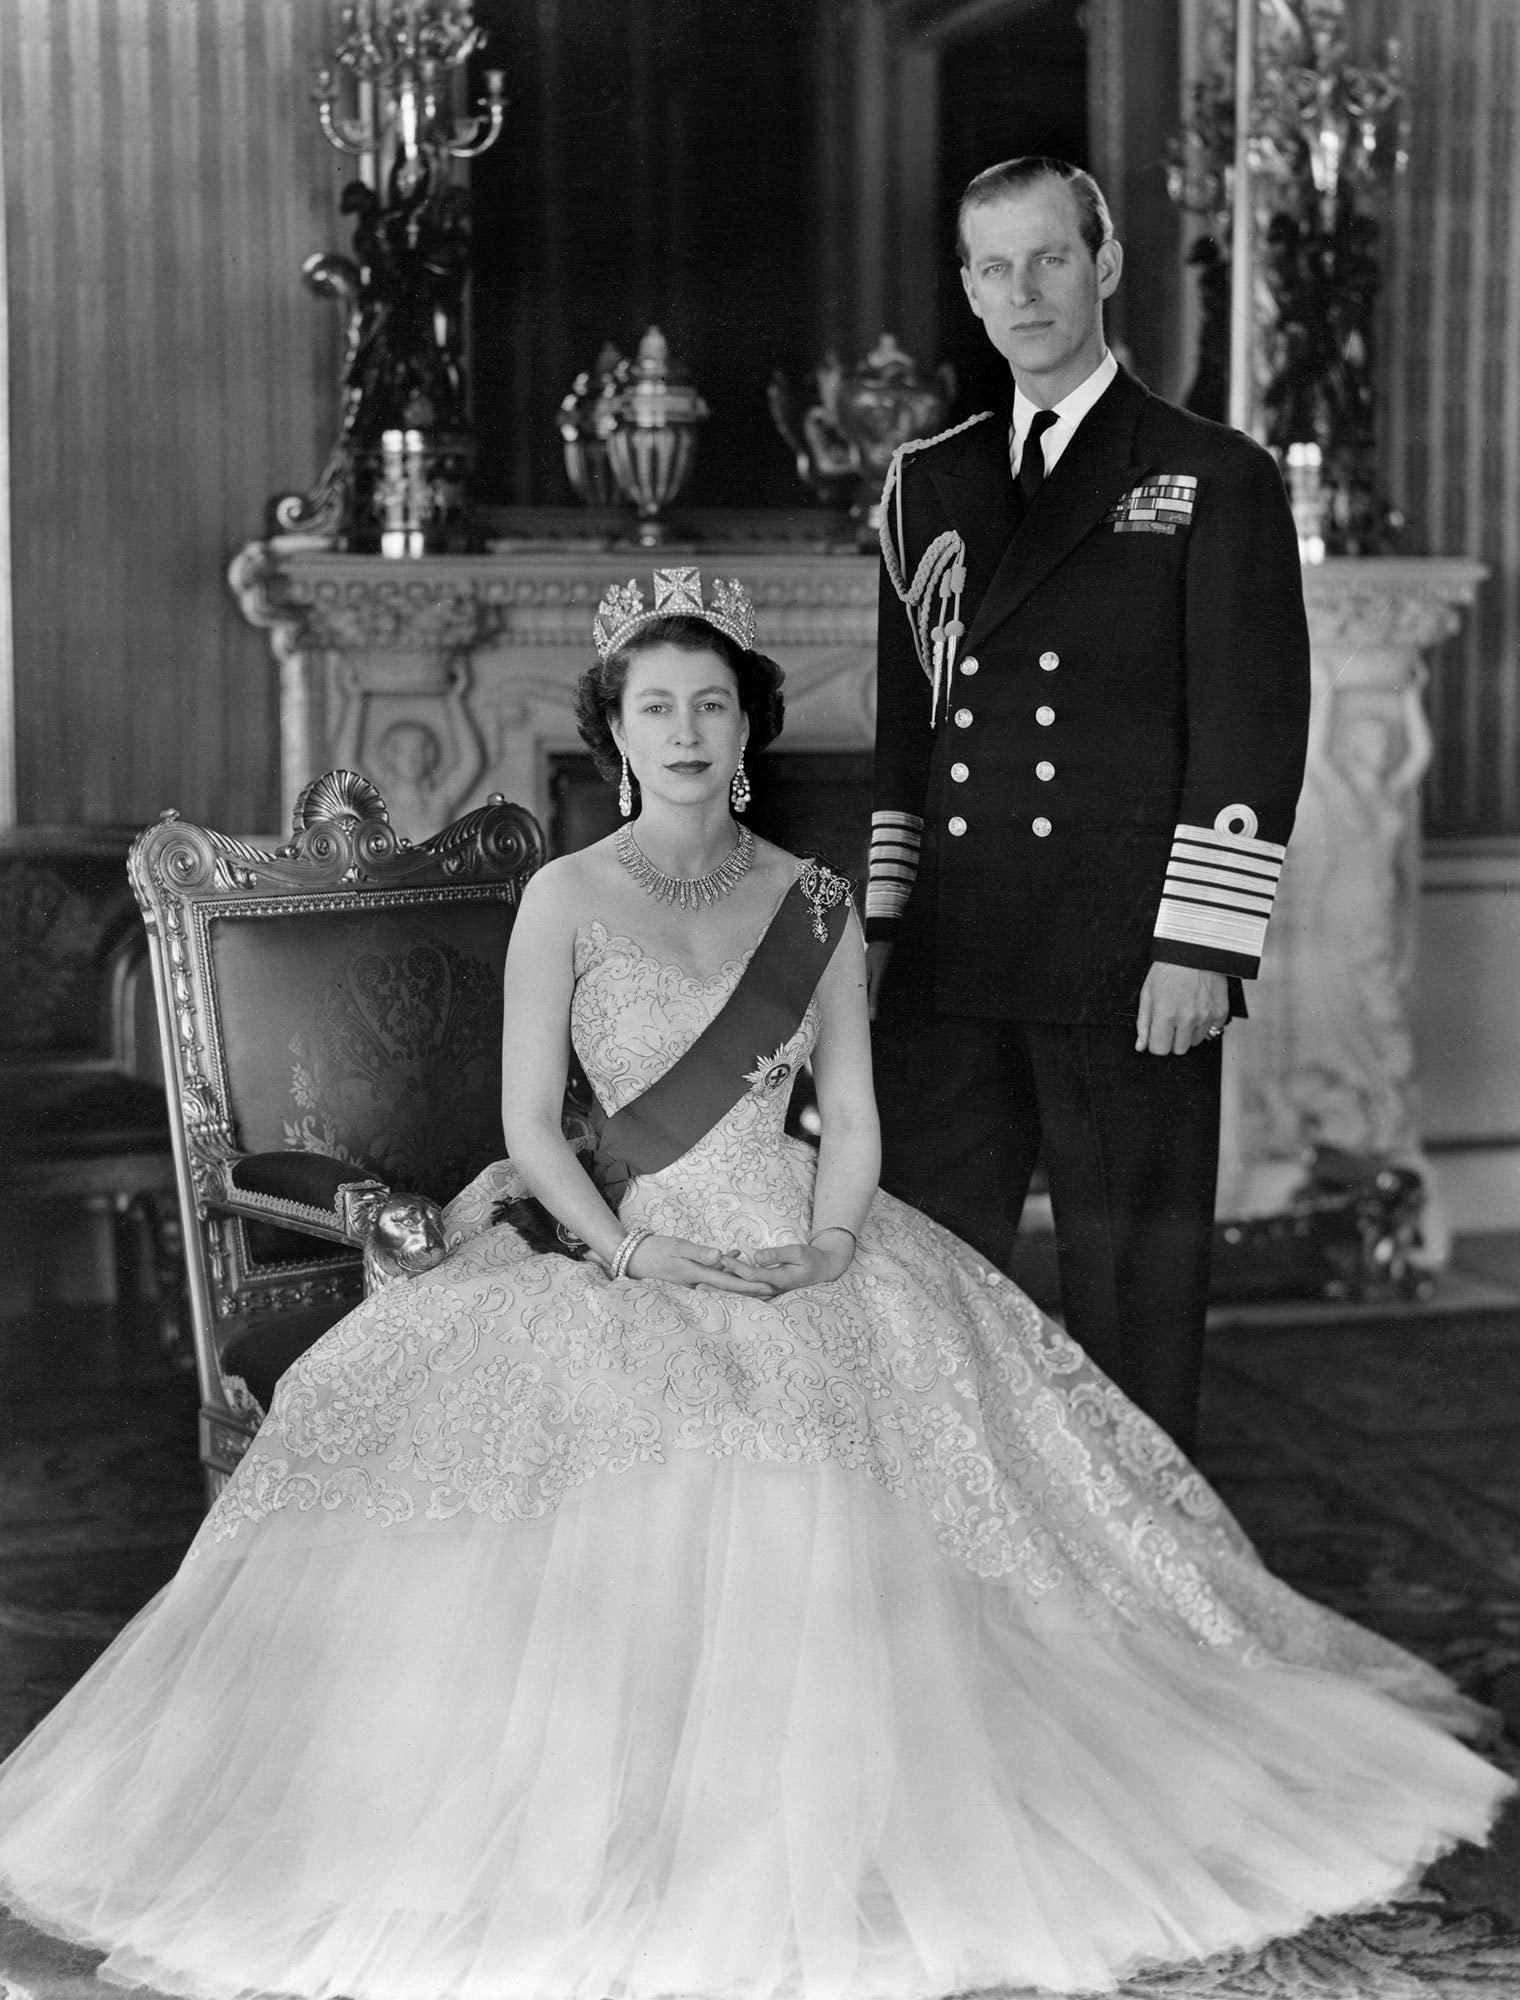 Queen Elizabeth II and Prince Philip (Part II): 2nd cousins once removed